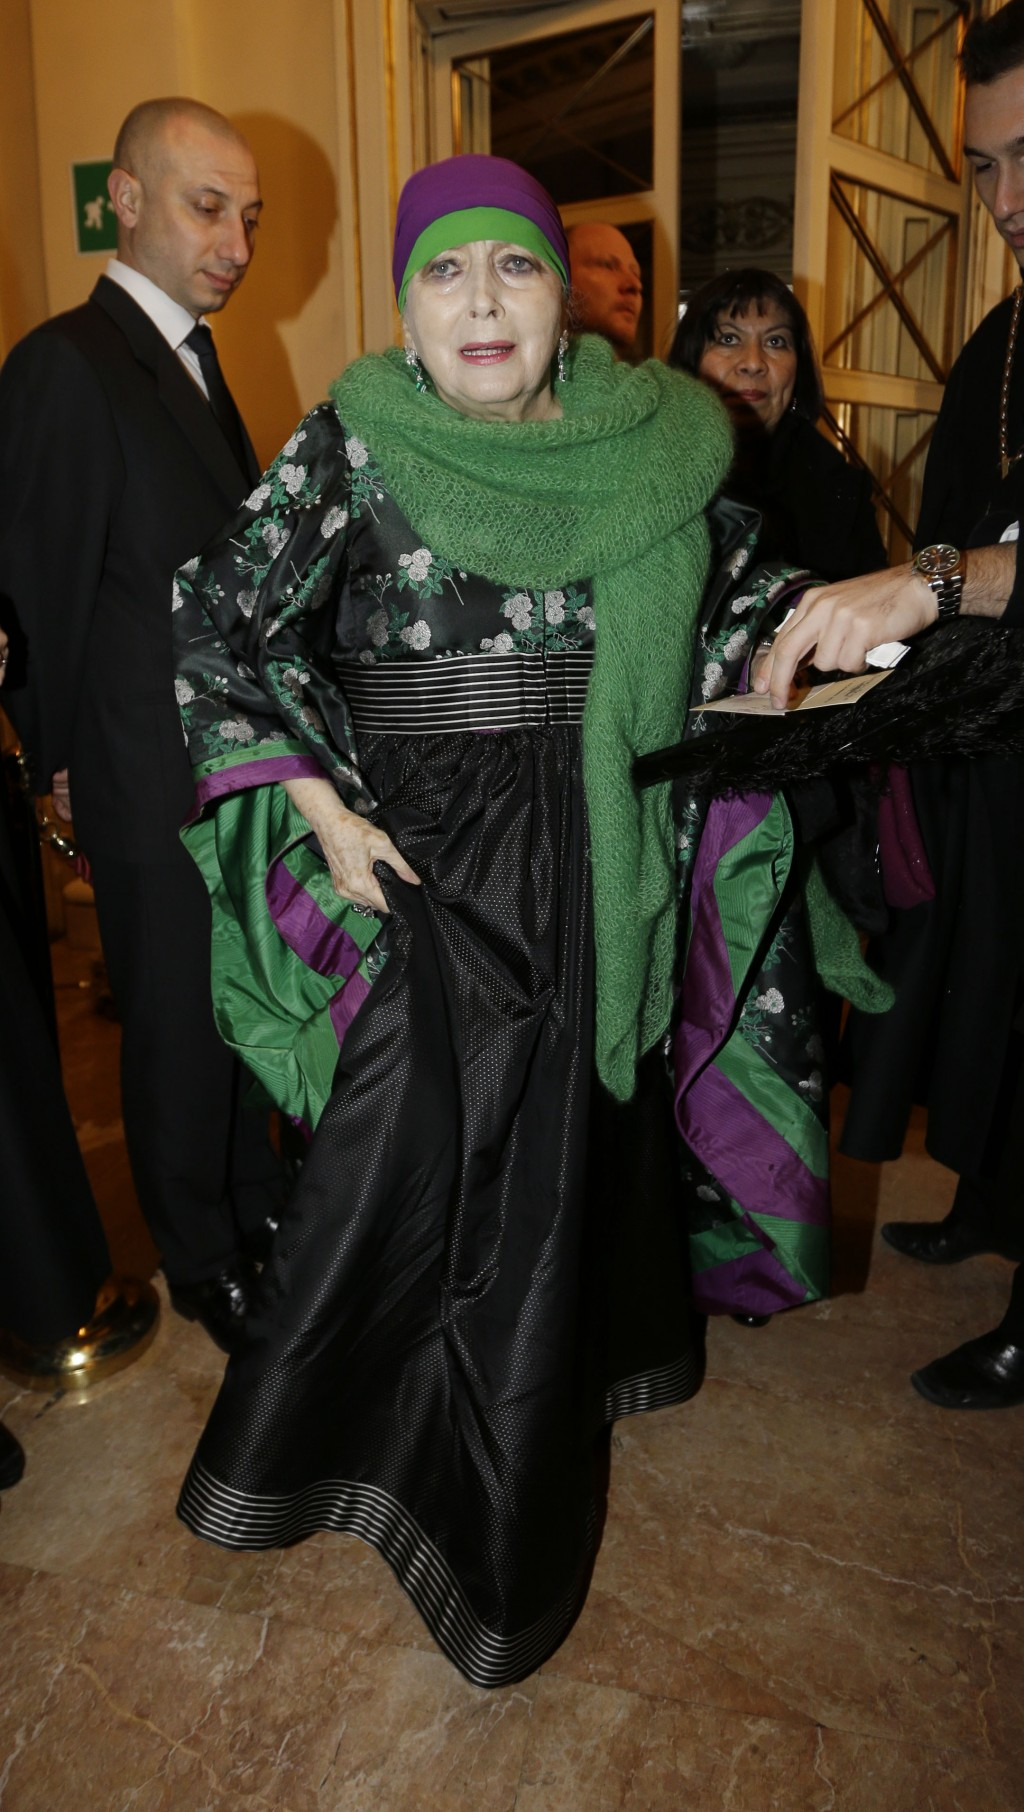 FILE - In this photo taken on Dec. 7, 2012, Italian actress Valentina Cortese arrives at the Milan La Scala theater, Italy. The renown actress, who wo...